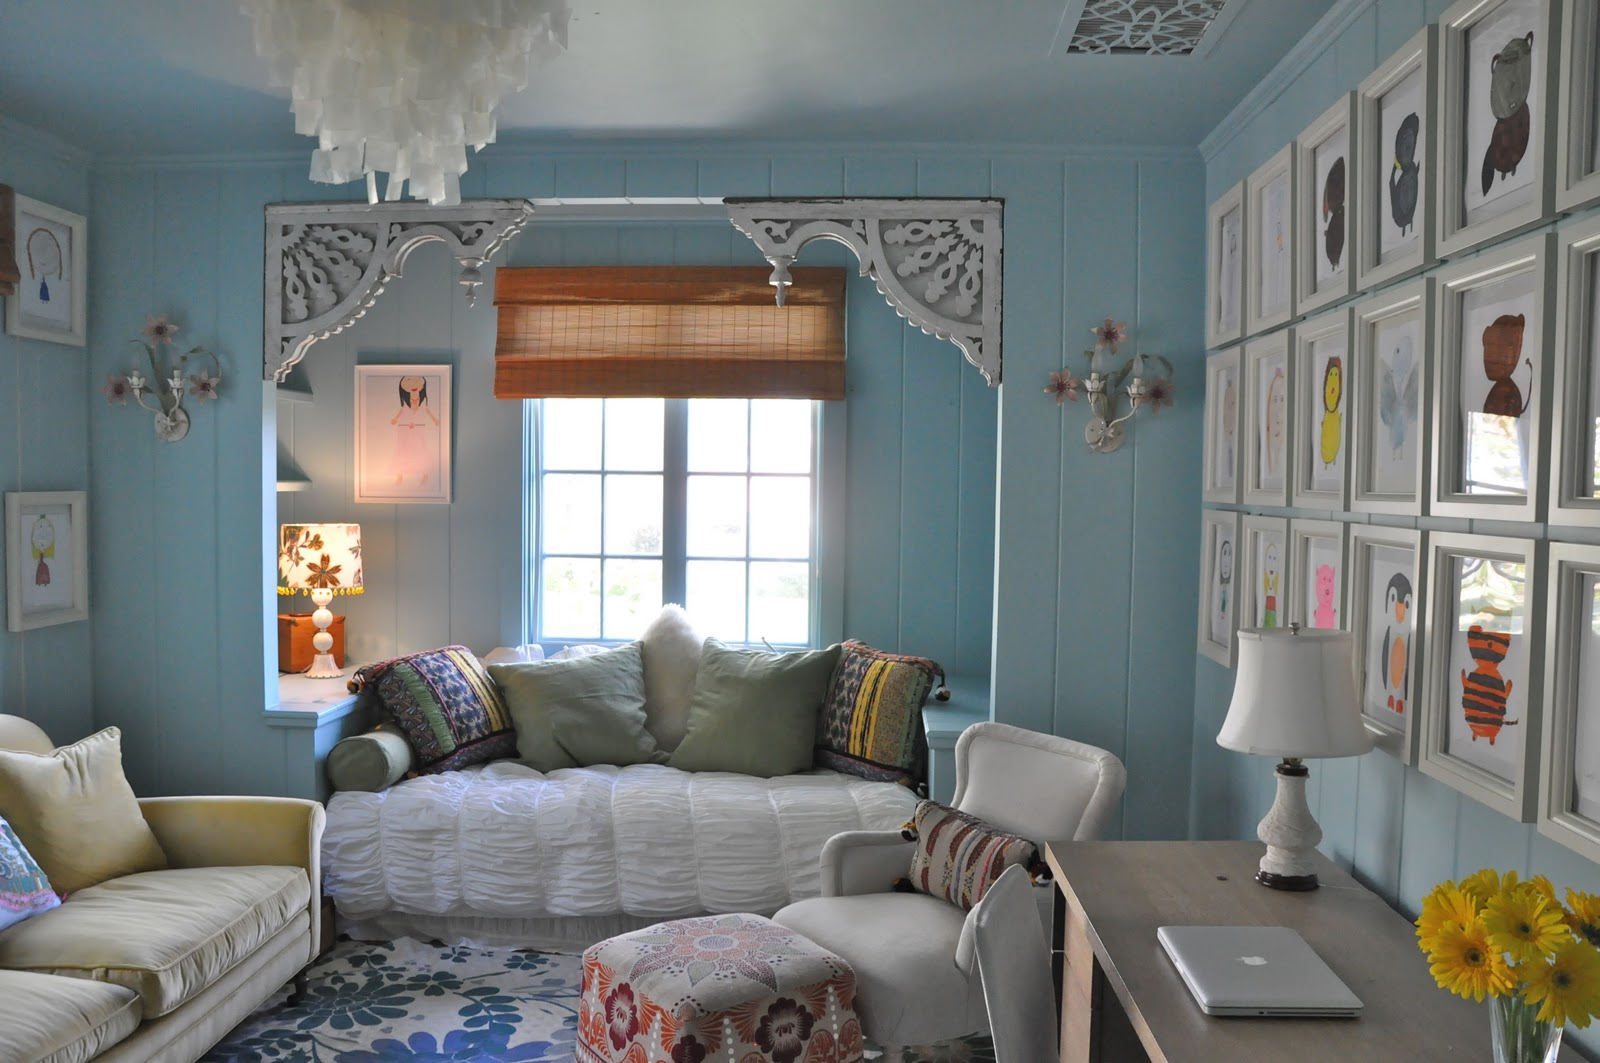 10 Year Old's Room by Giannetti Designs(Via Made by Girl) title=